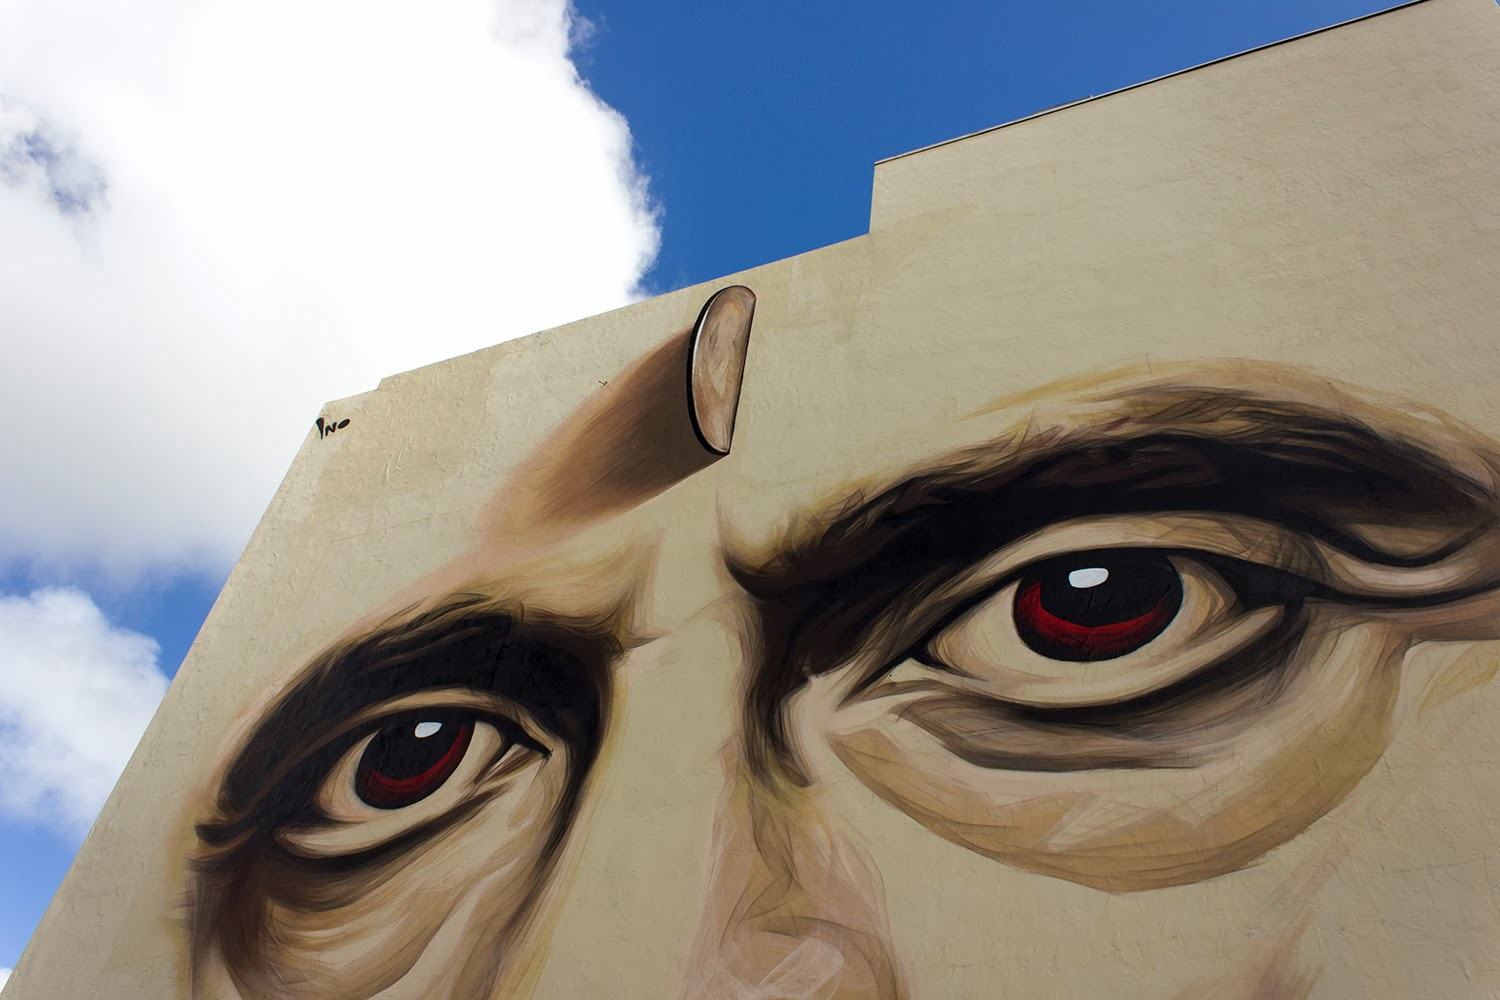 ino-in-heaven-with-you-new-mural-in-wynwood-miami-06